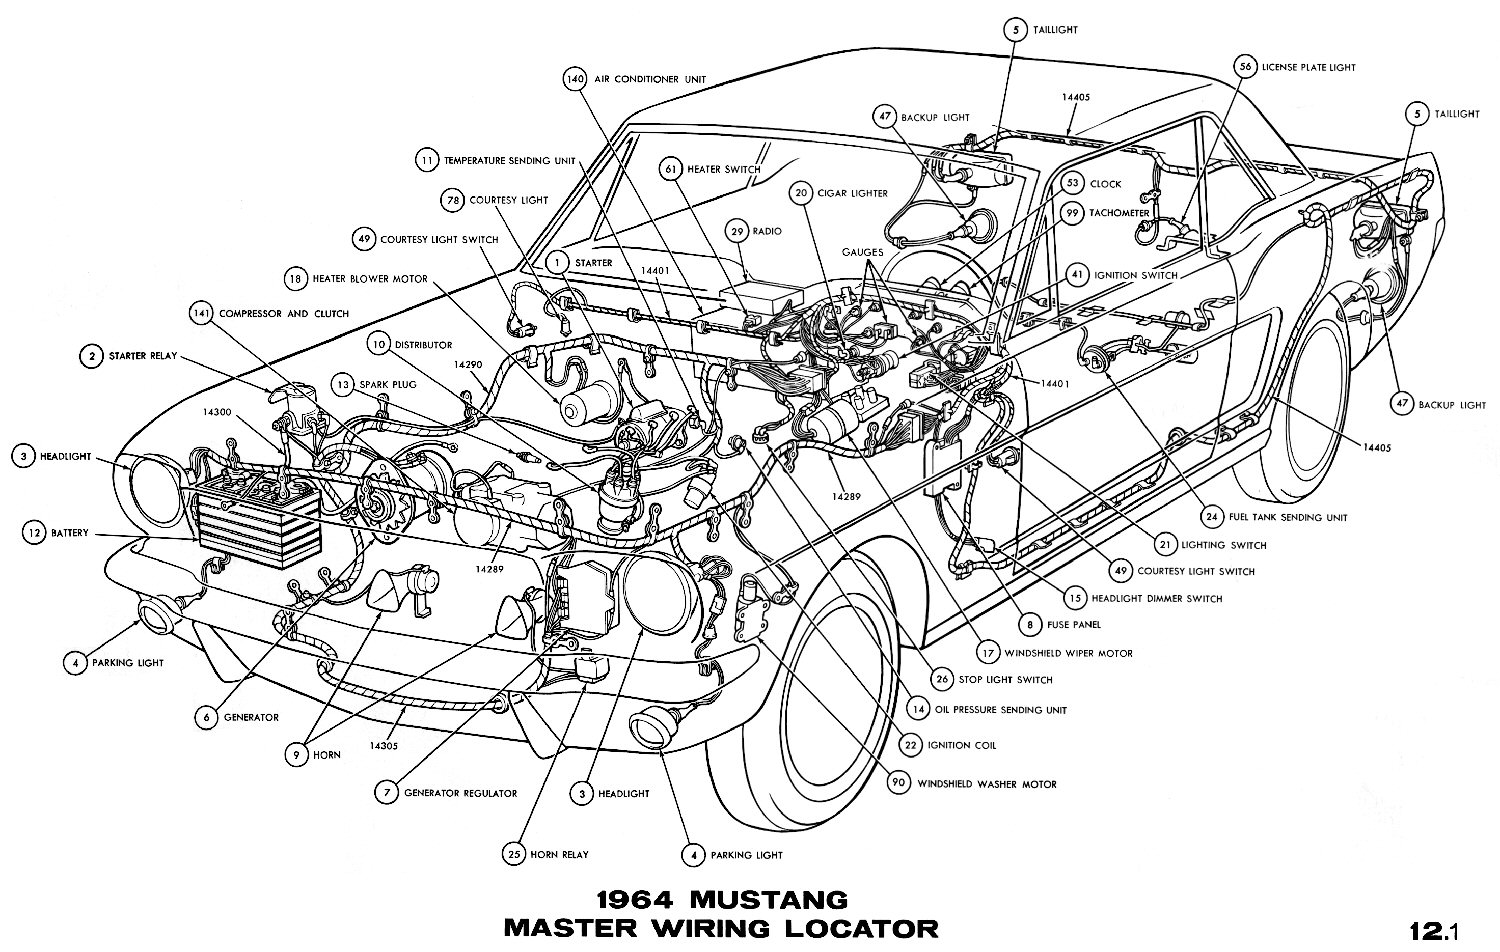 1964a 1964 mustang wiring diagrams average joe restoration 66 mustang wiring diagram at eliteediting.co